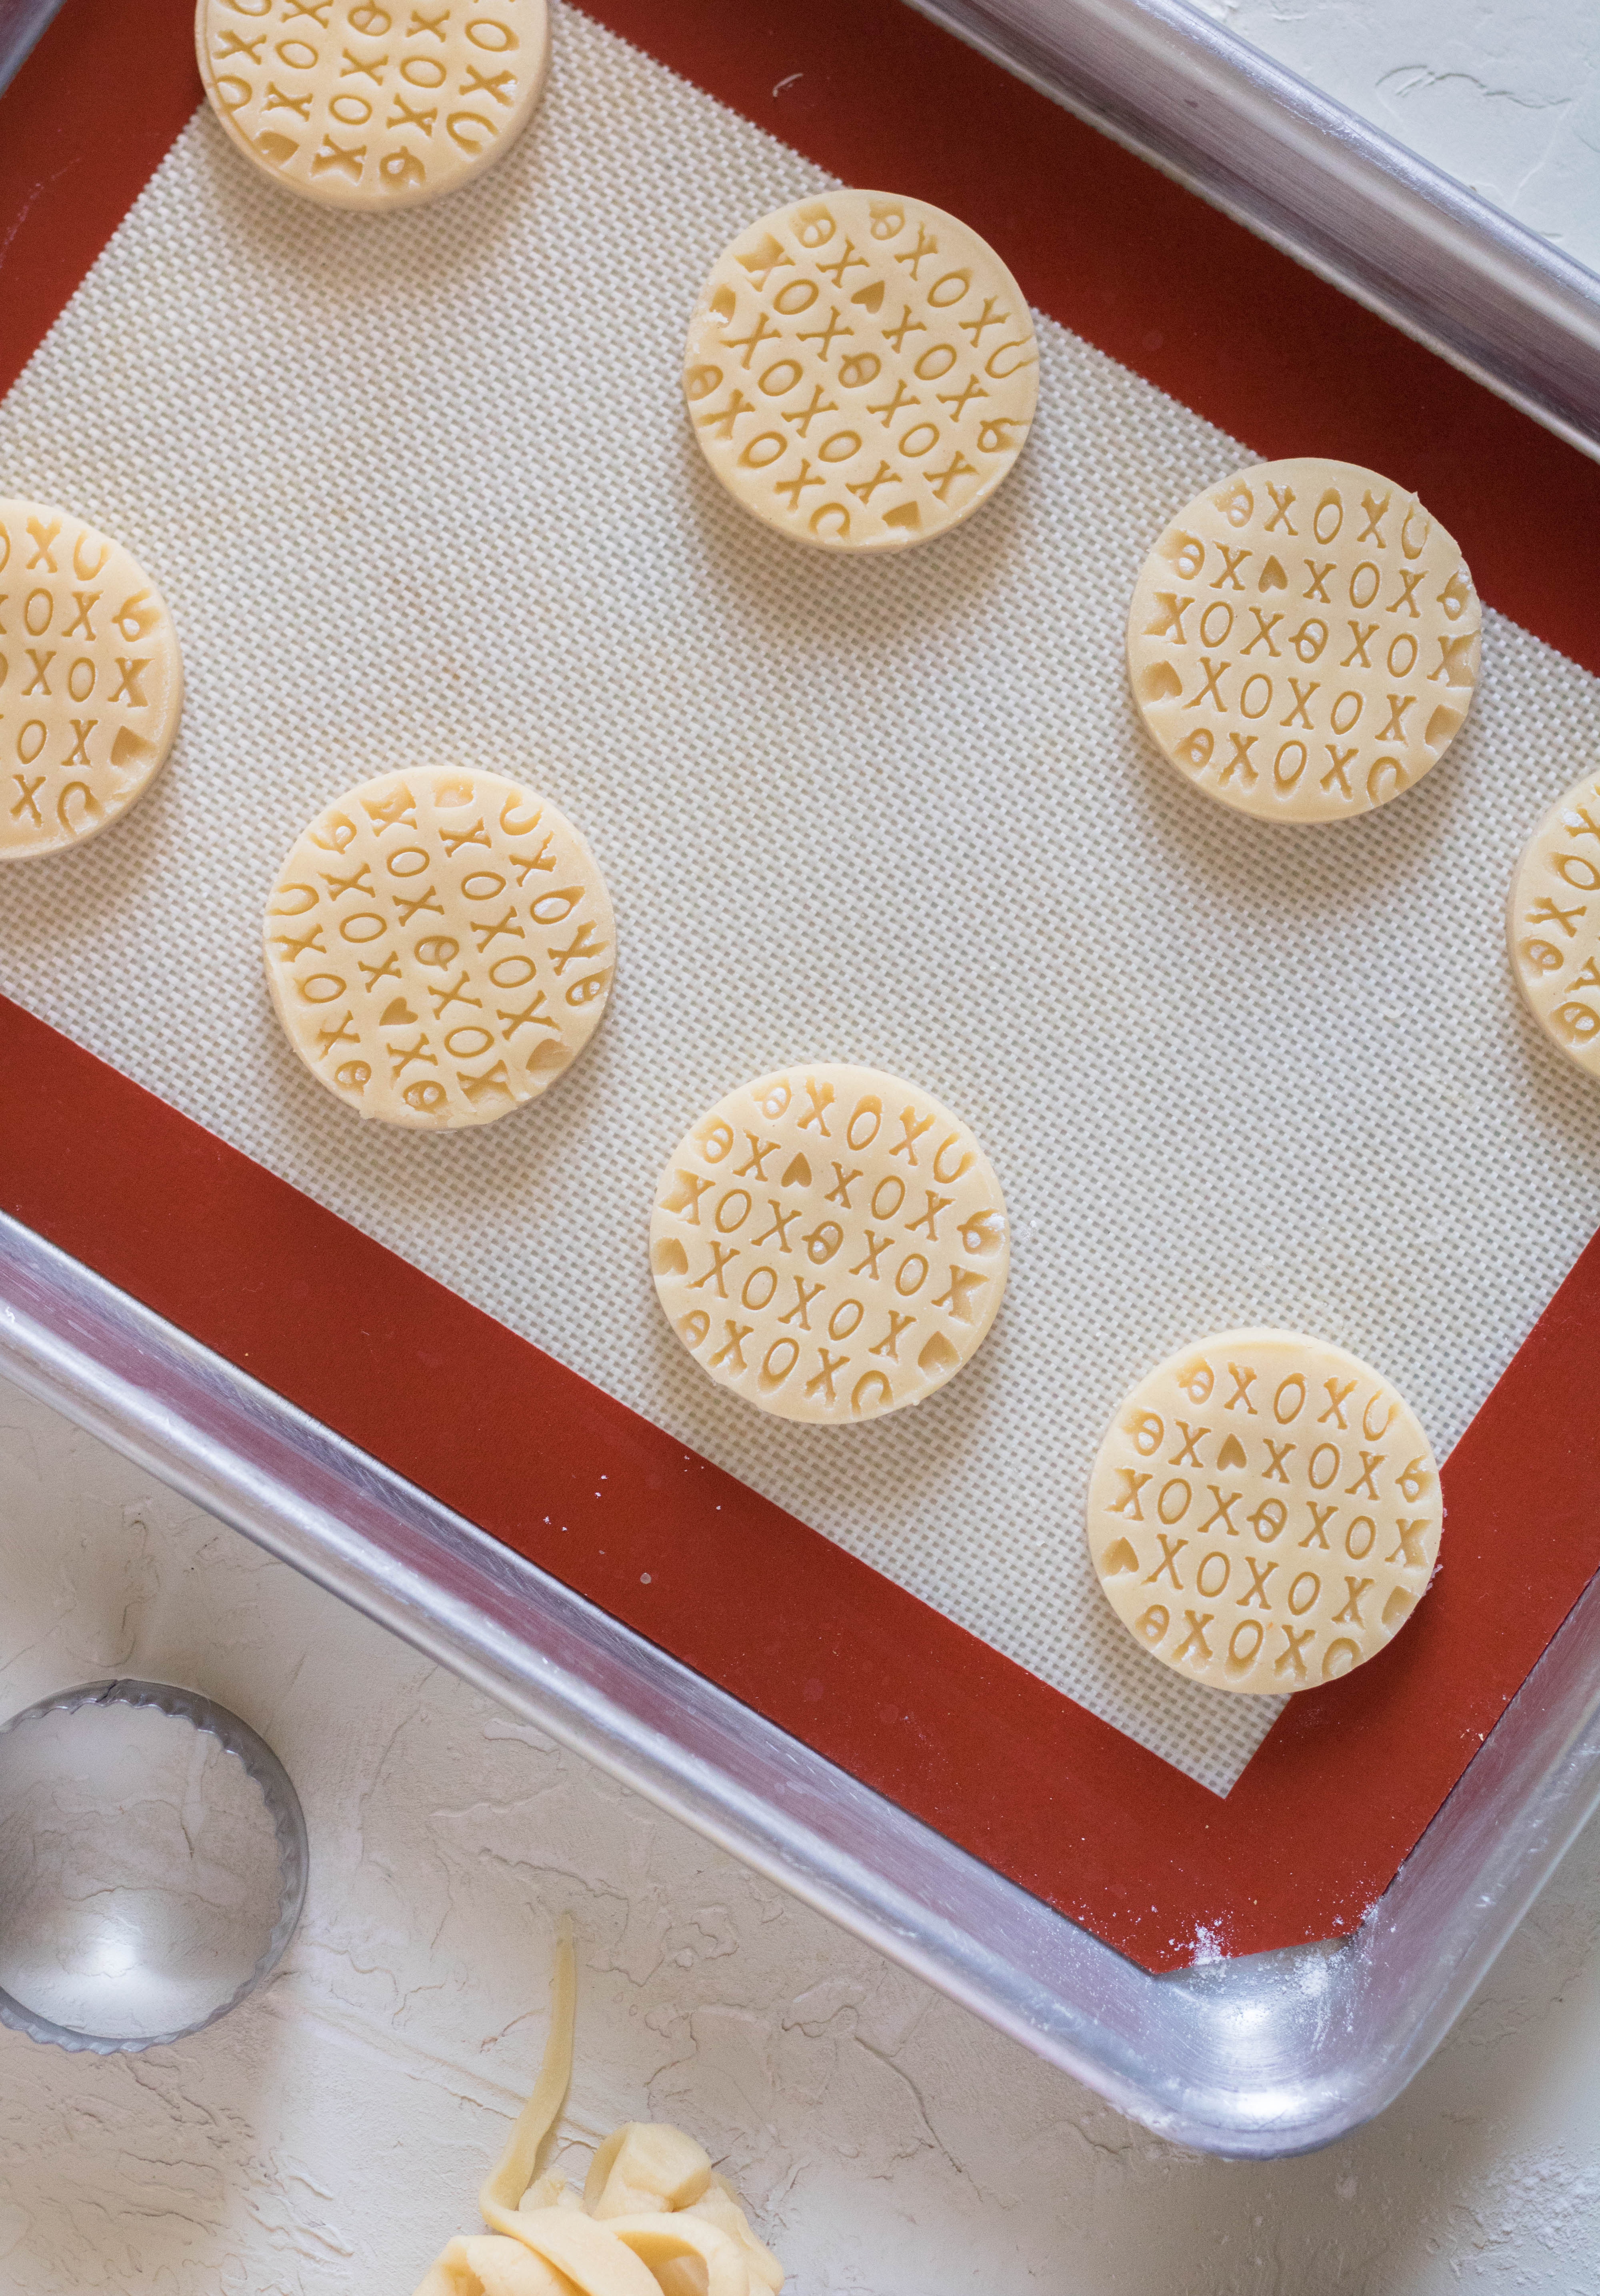 XOXO shortbread cookies